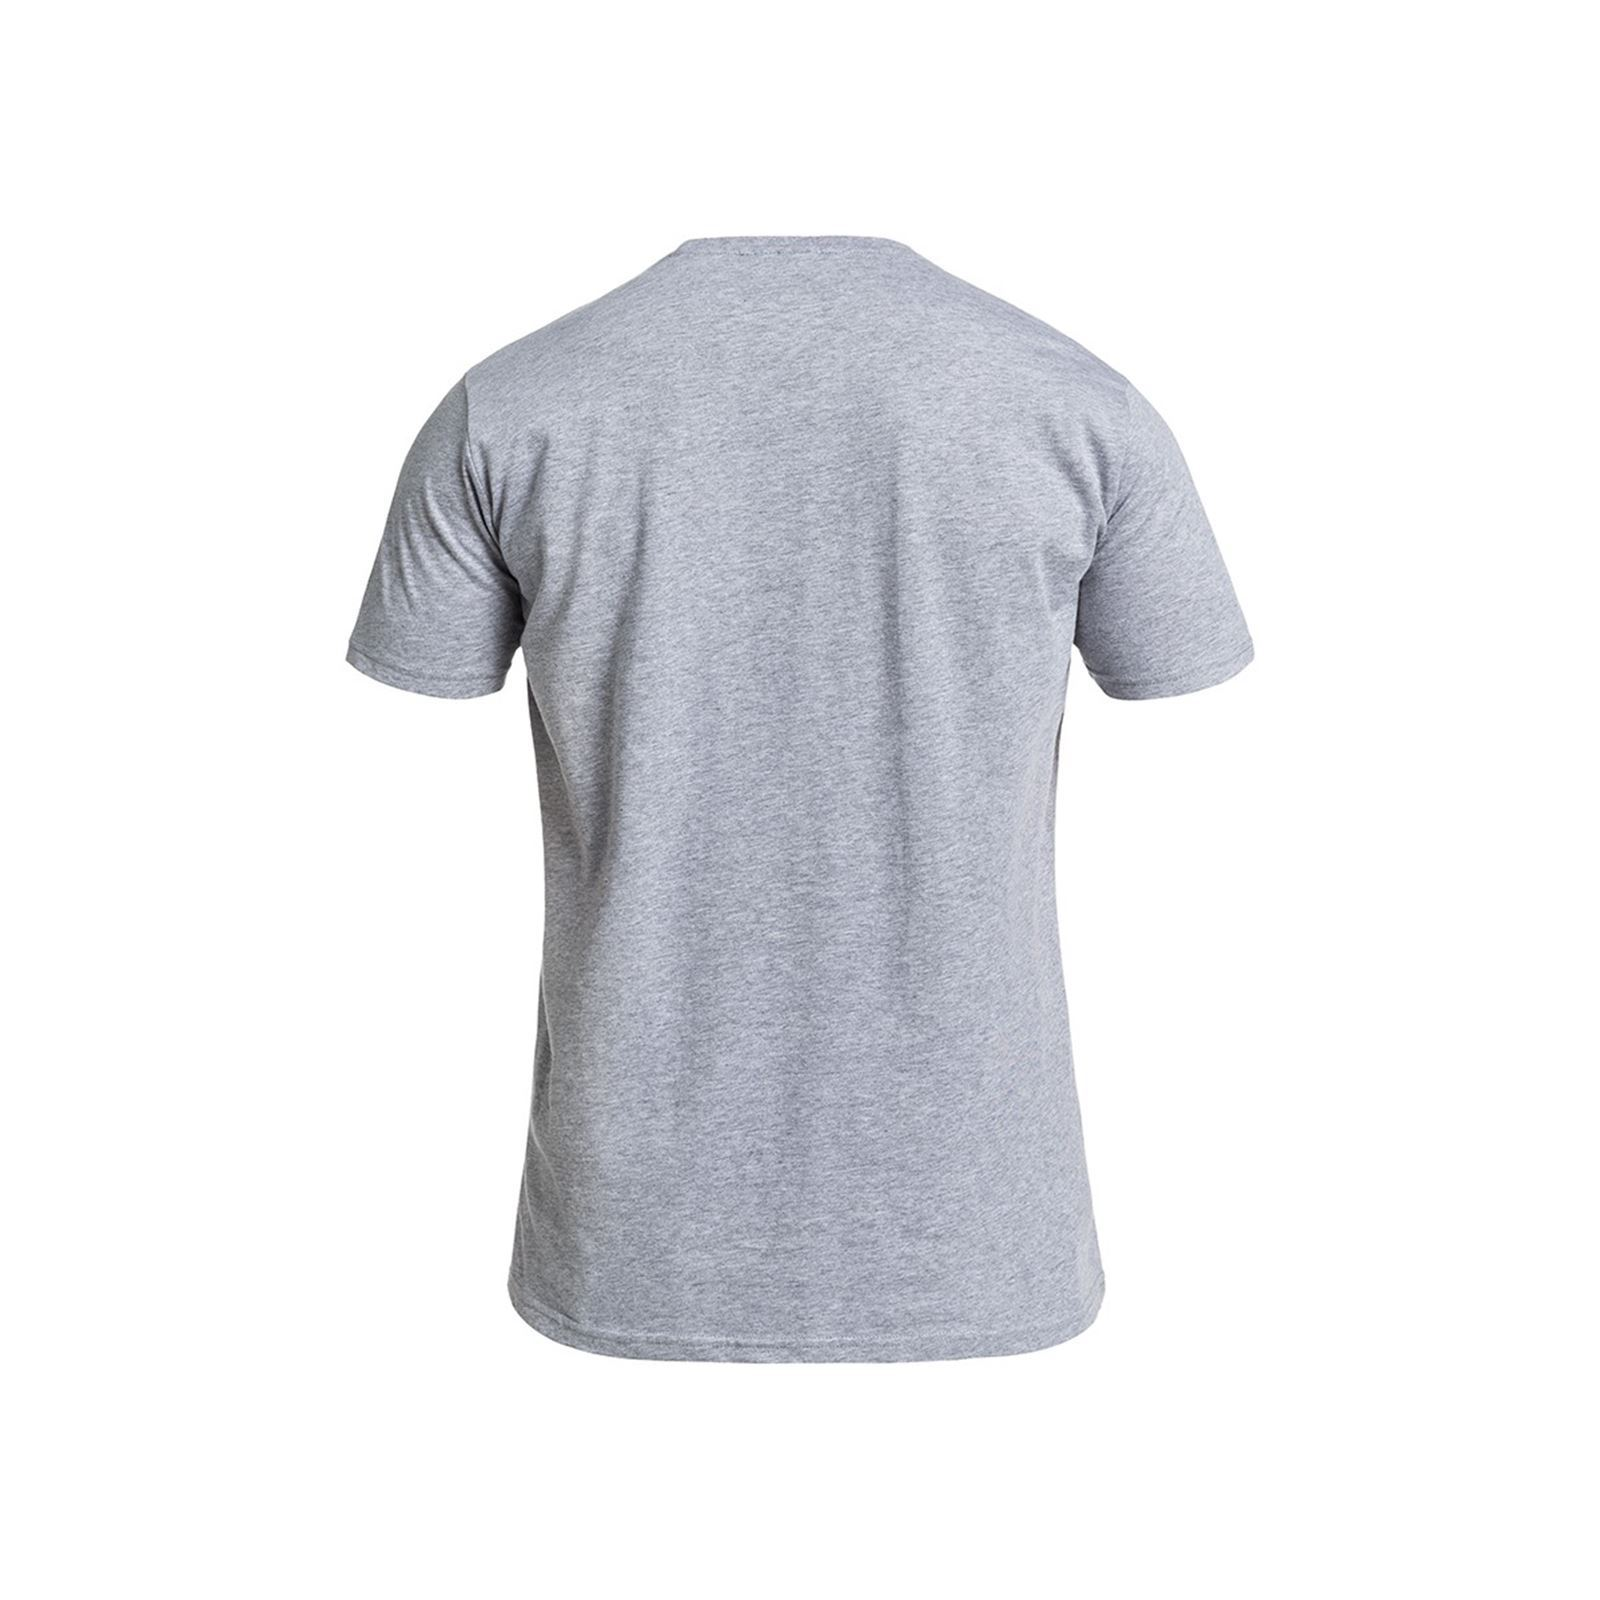 Chine Courtes Manches shirt Lifestyle Division Gris Rugby T z0qTBxf